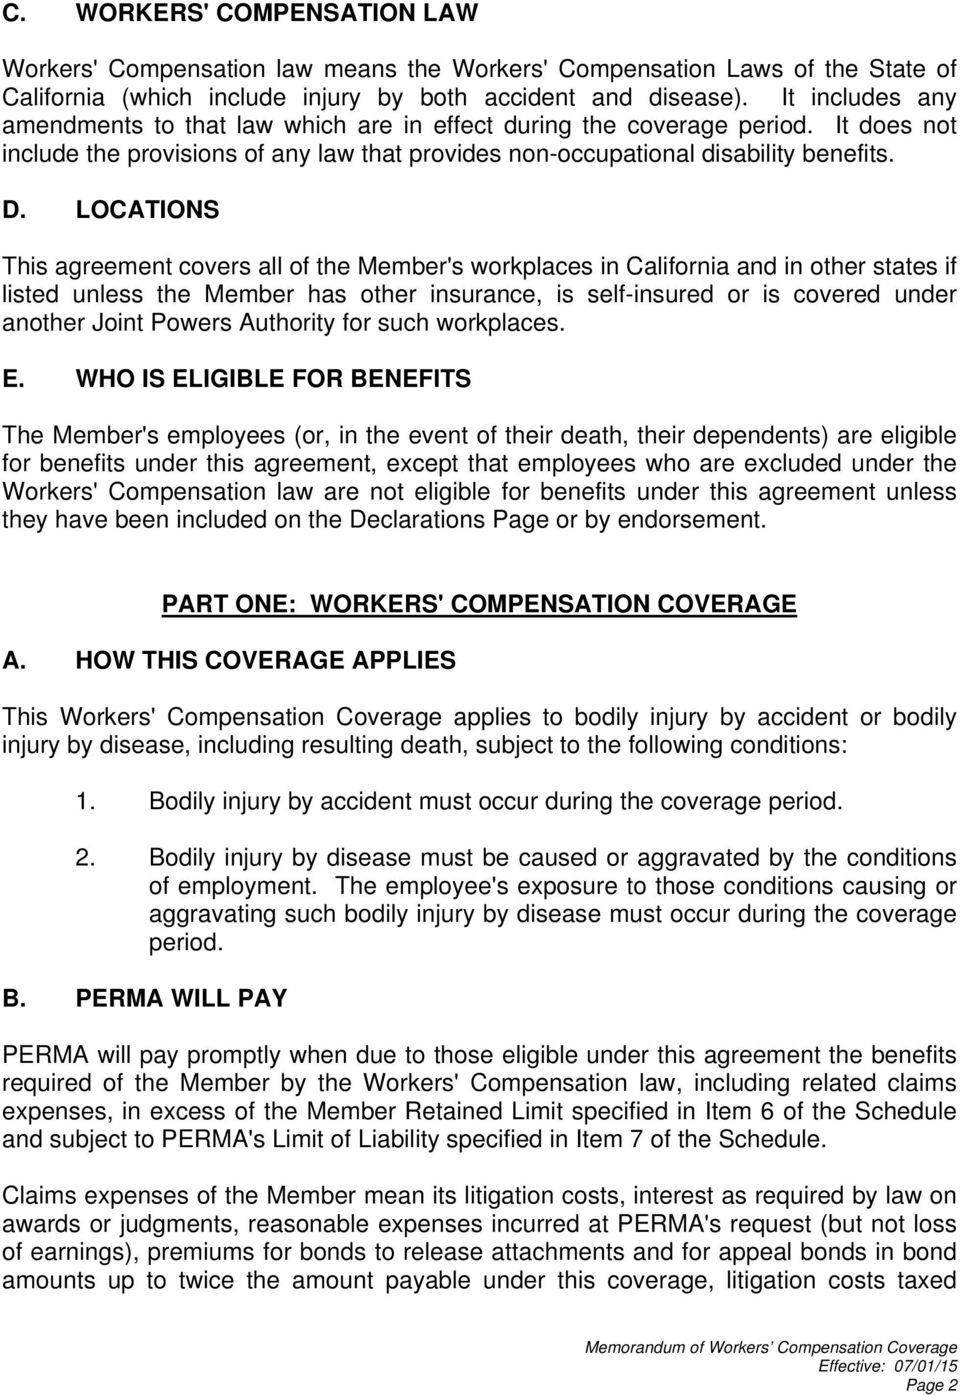 LOCATIONS This agreement covers all of the Member's workplaces in California and in other states if listed unless the Member has other insurance, is self-insured or is covered under another Joint